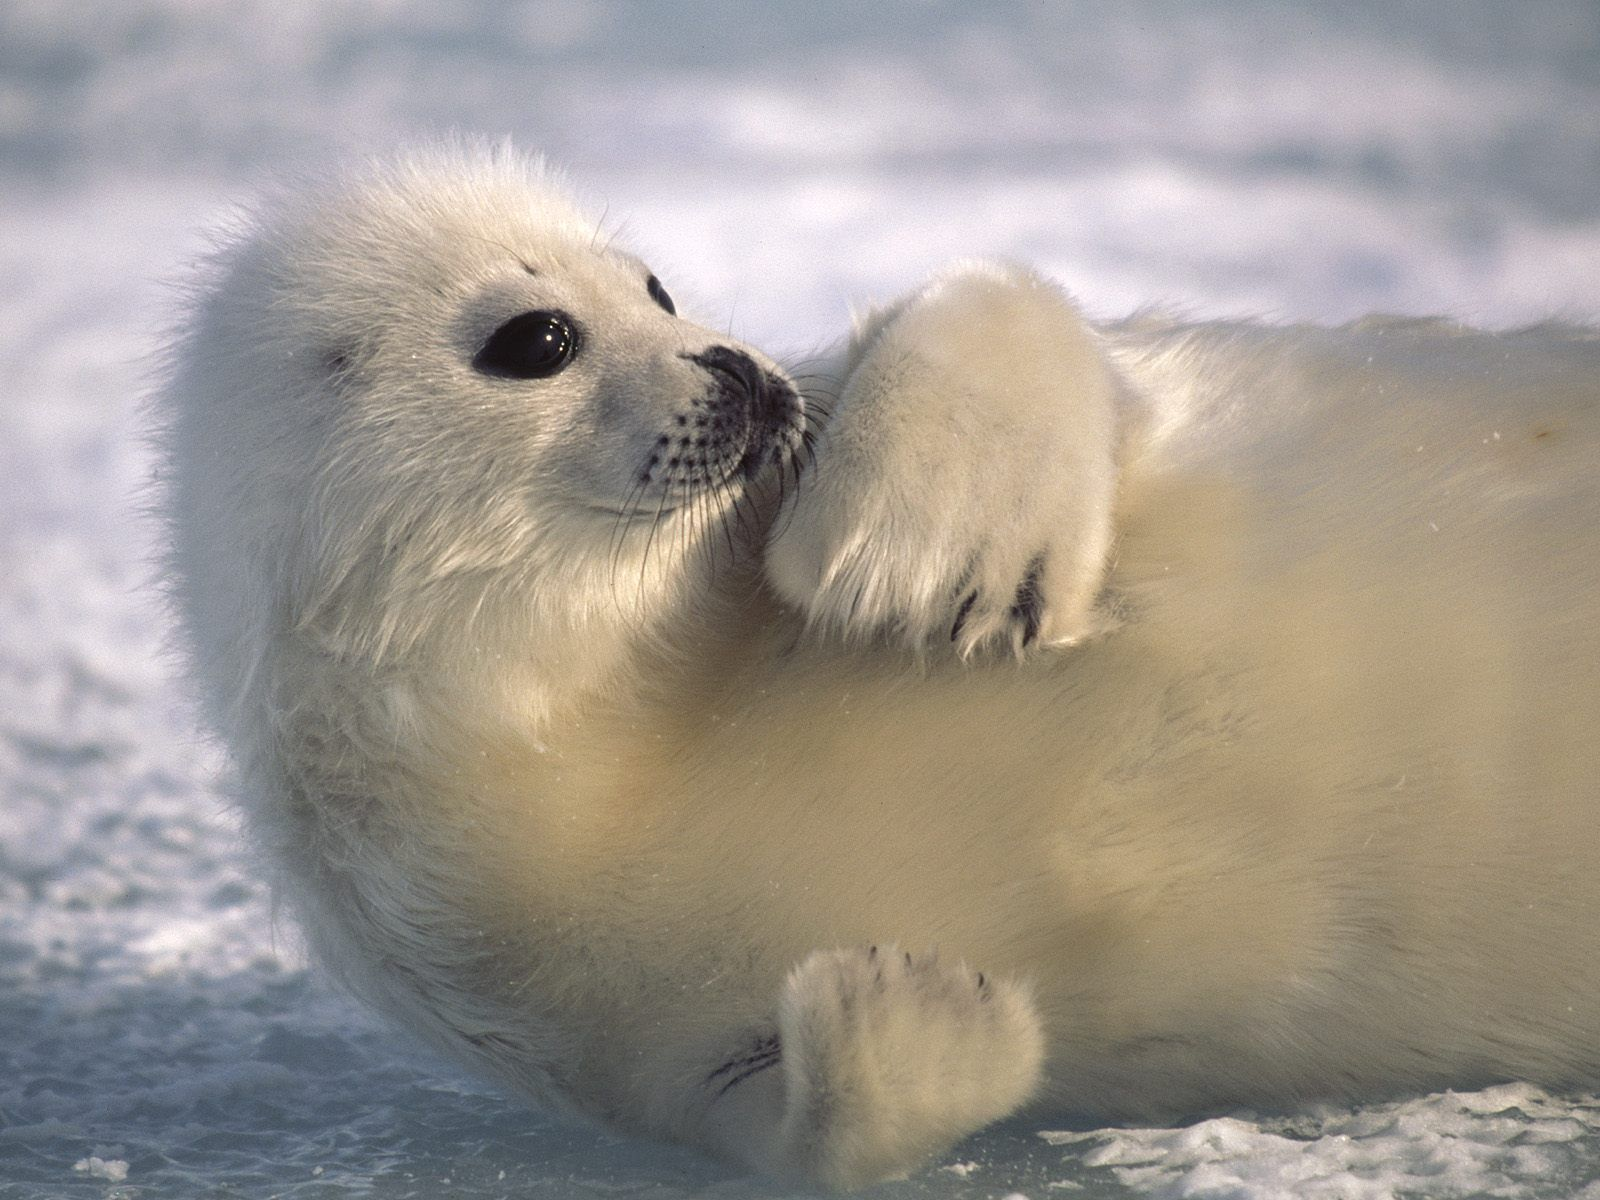 Ocean Animal Pictures - Google Search